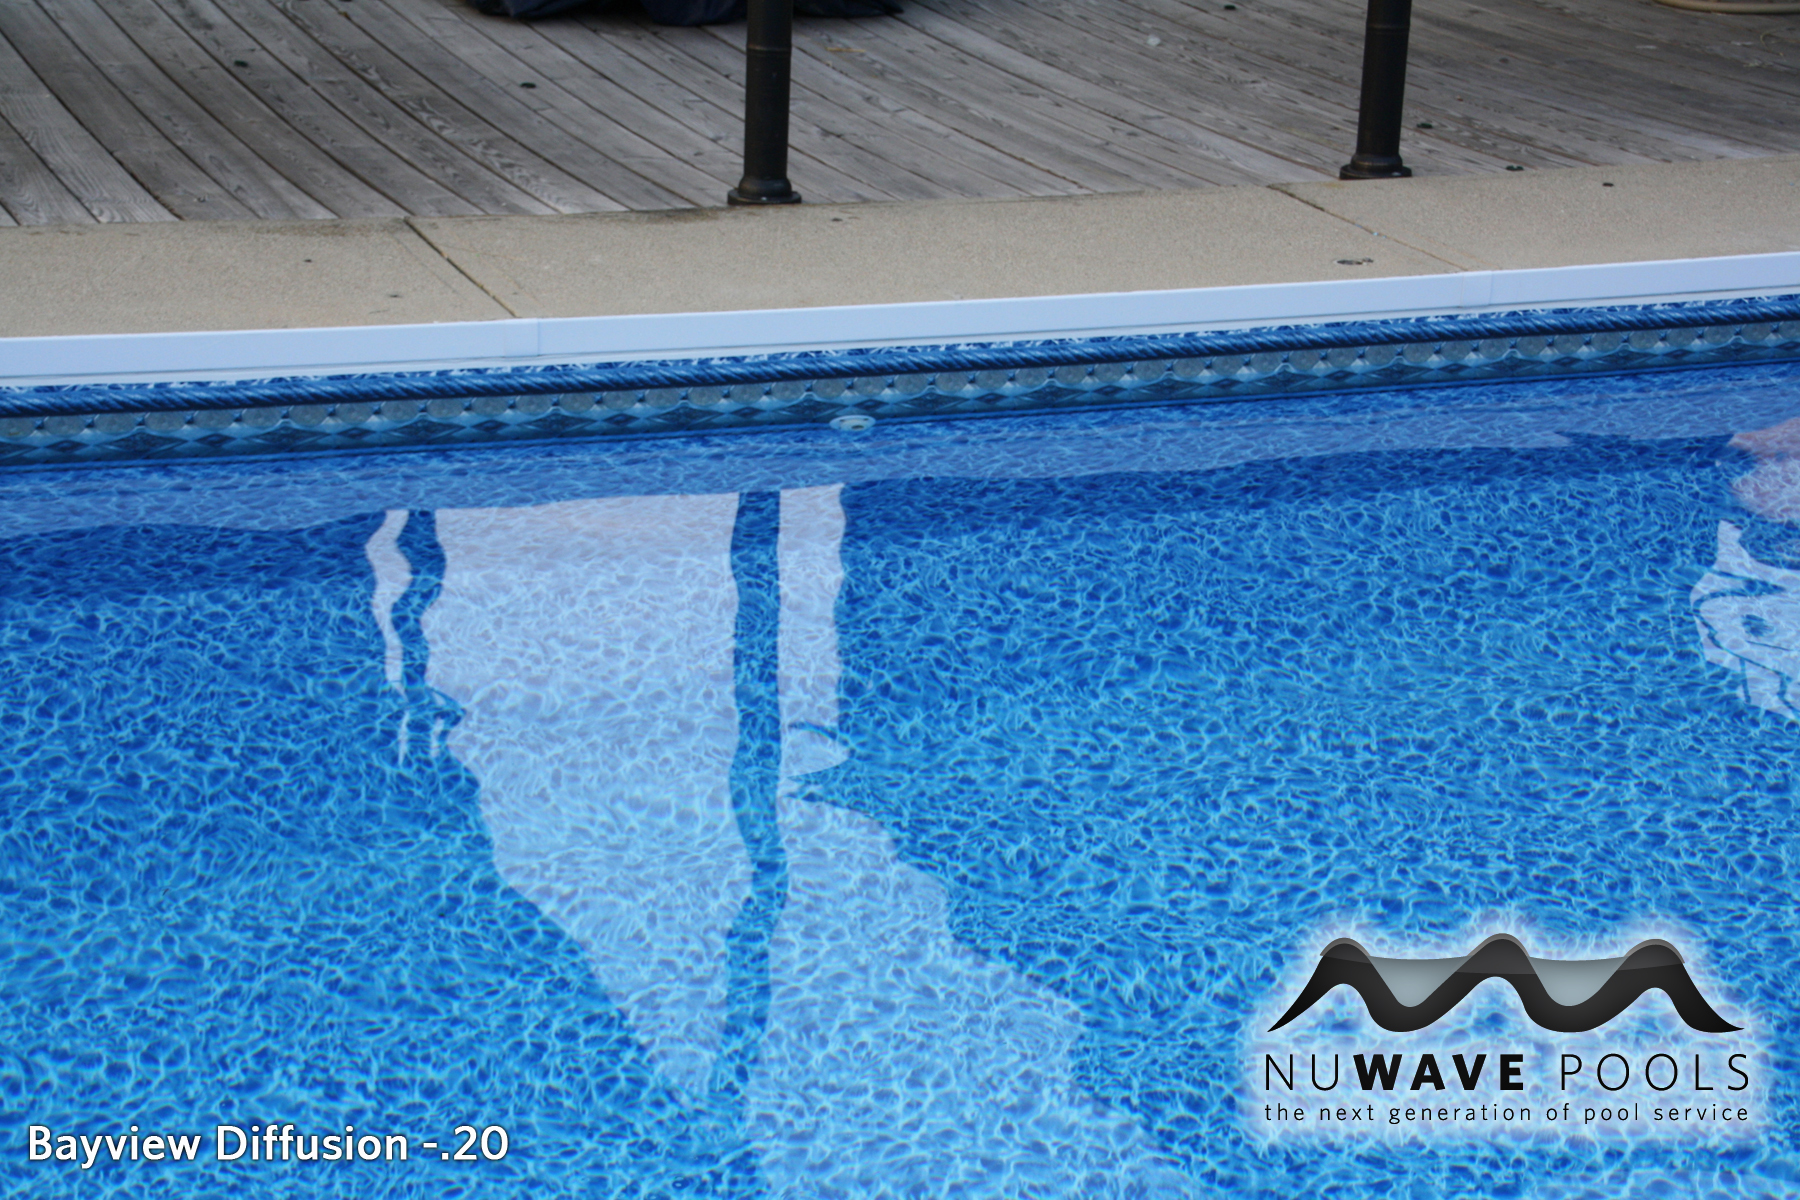 Miamisburg Ohio Bayview Diffusion 20 Mil Nuwave Pools